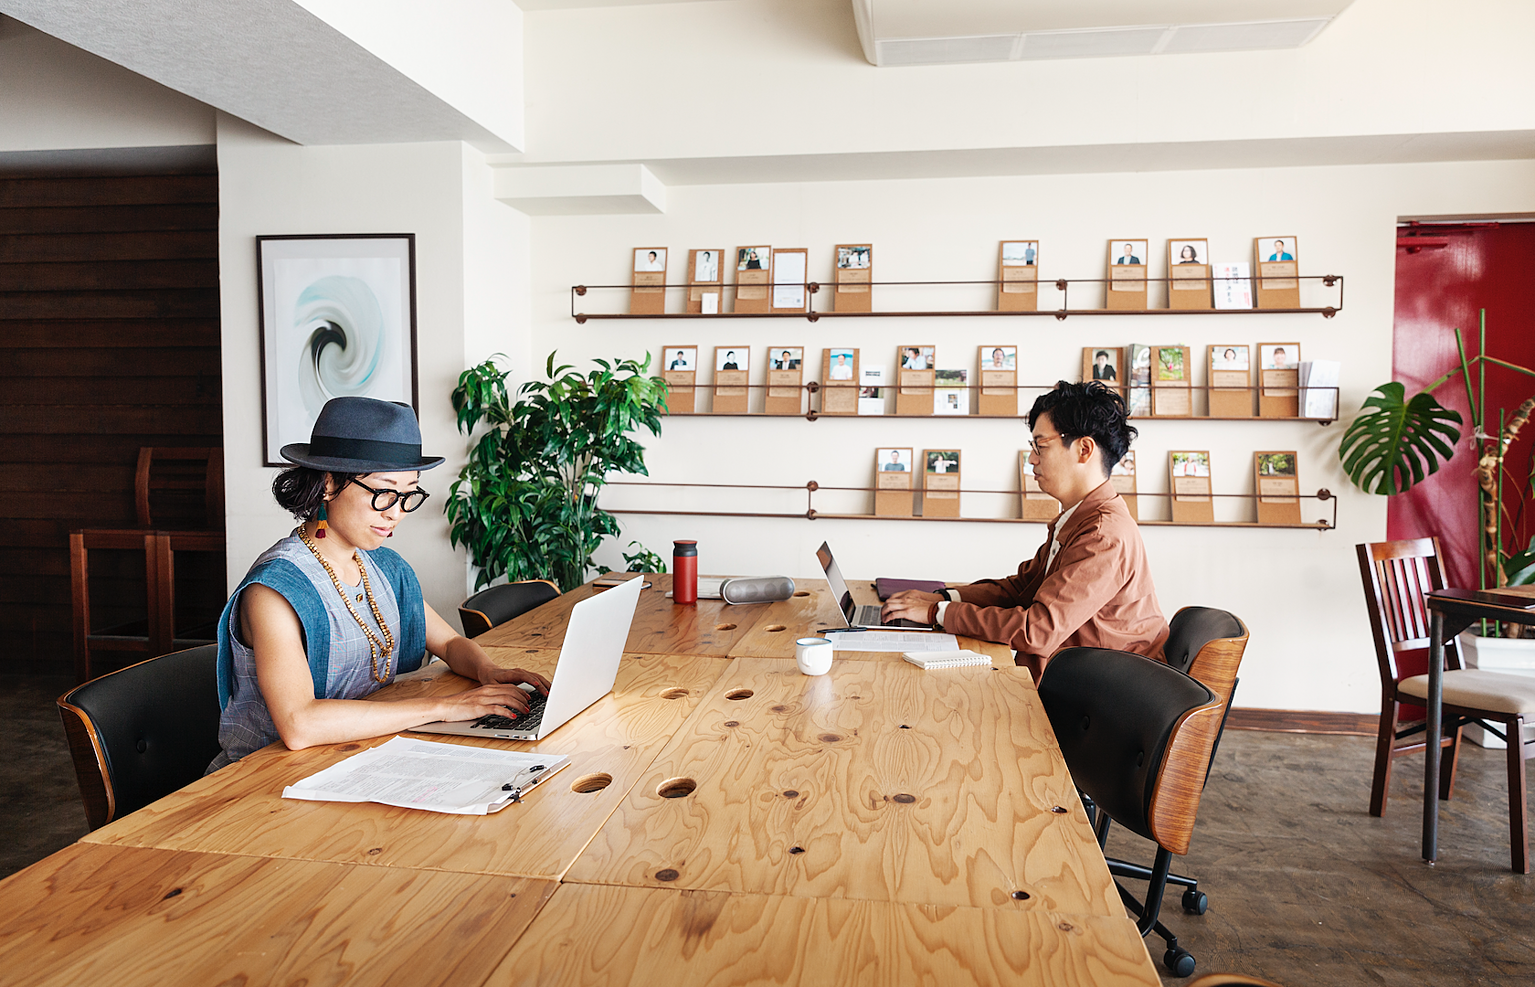 7 Perks New Hires Love About Co-Working Spaces